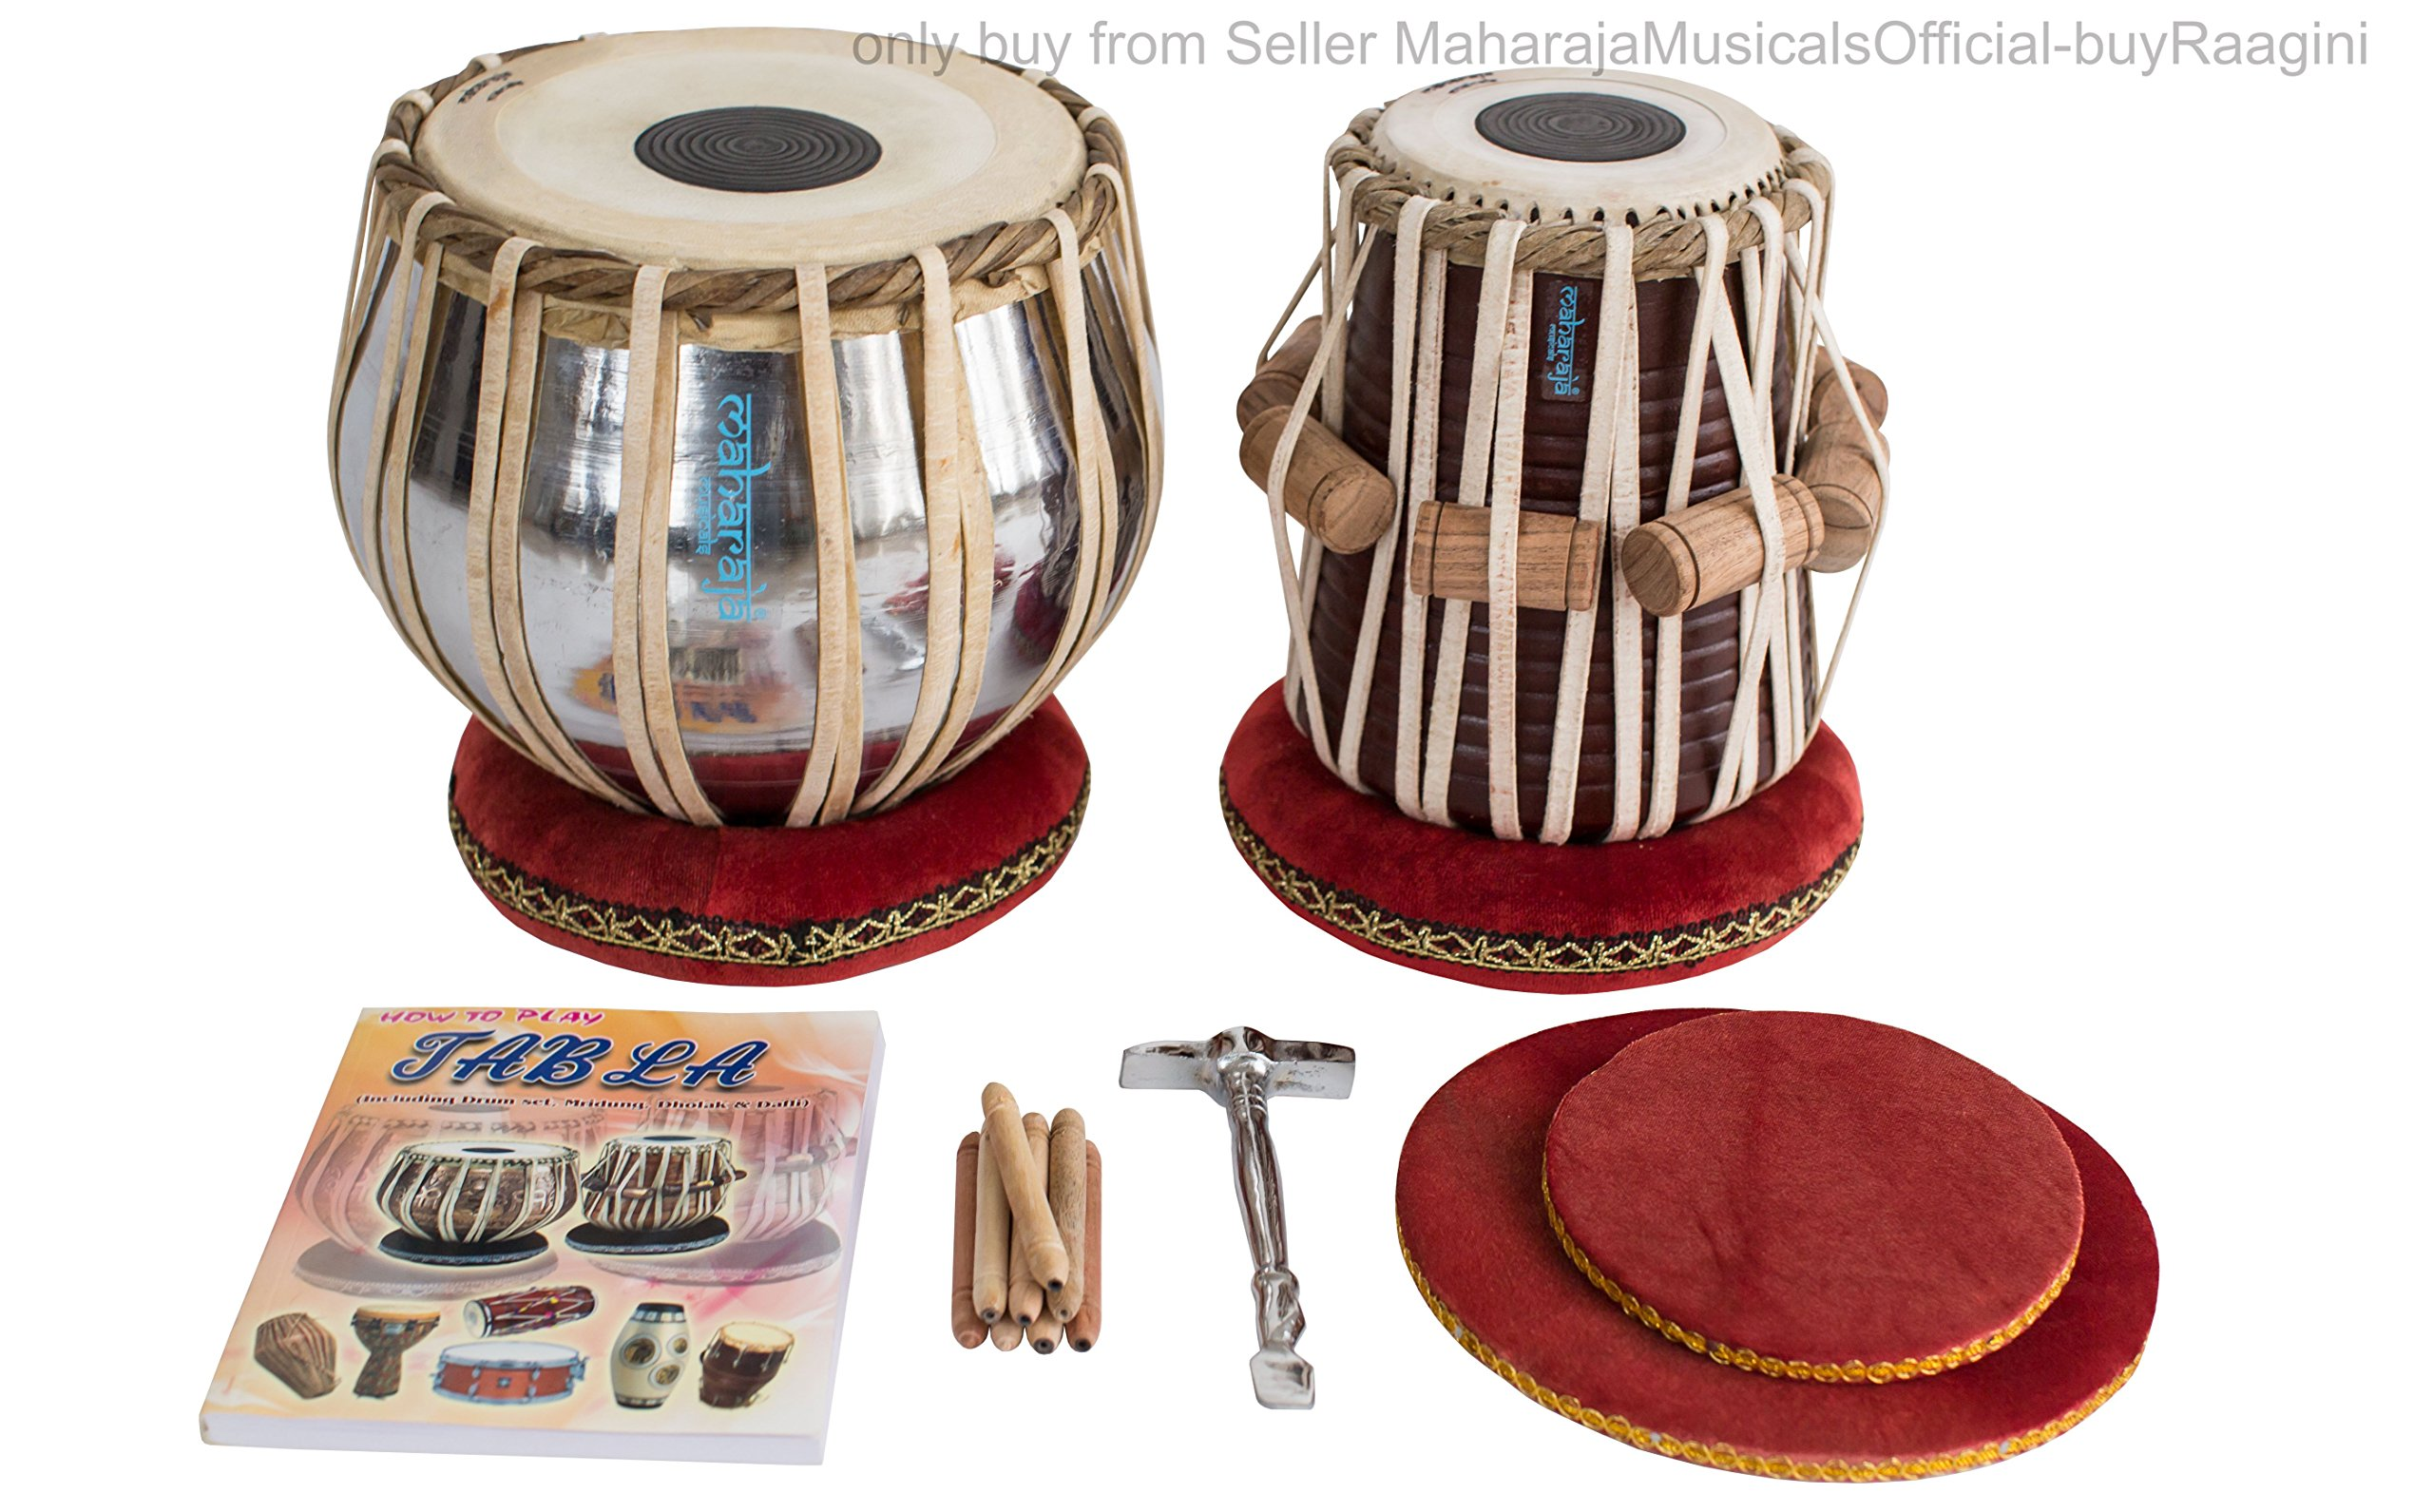 MAHARAJA Student Tabla Drum Set, Basic Tabla Set, Steel Bayan, Dayan with Book, Hammer, Cushions & Cover - Perfect Tablas for Students and Beginners on Budget (PDI-IB) Tabla Drums, Indian Hand Drums by Maharaja Musicals (Image #7)